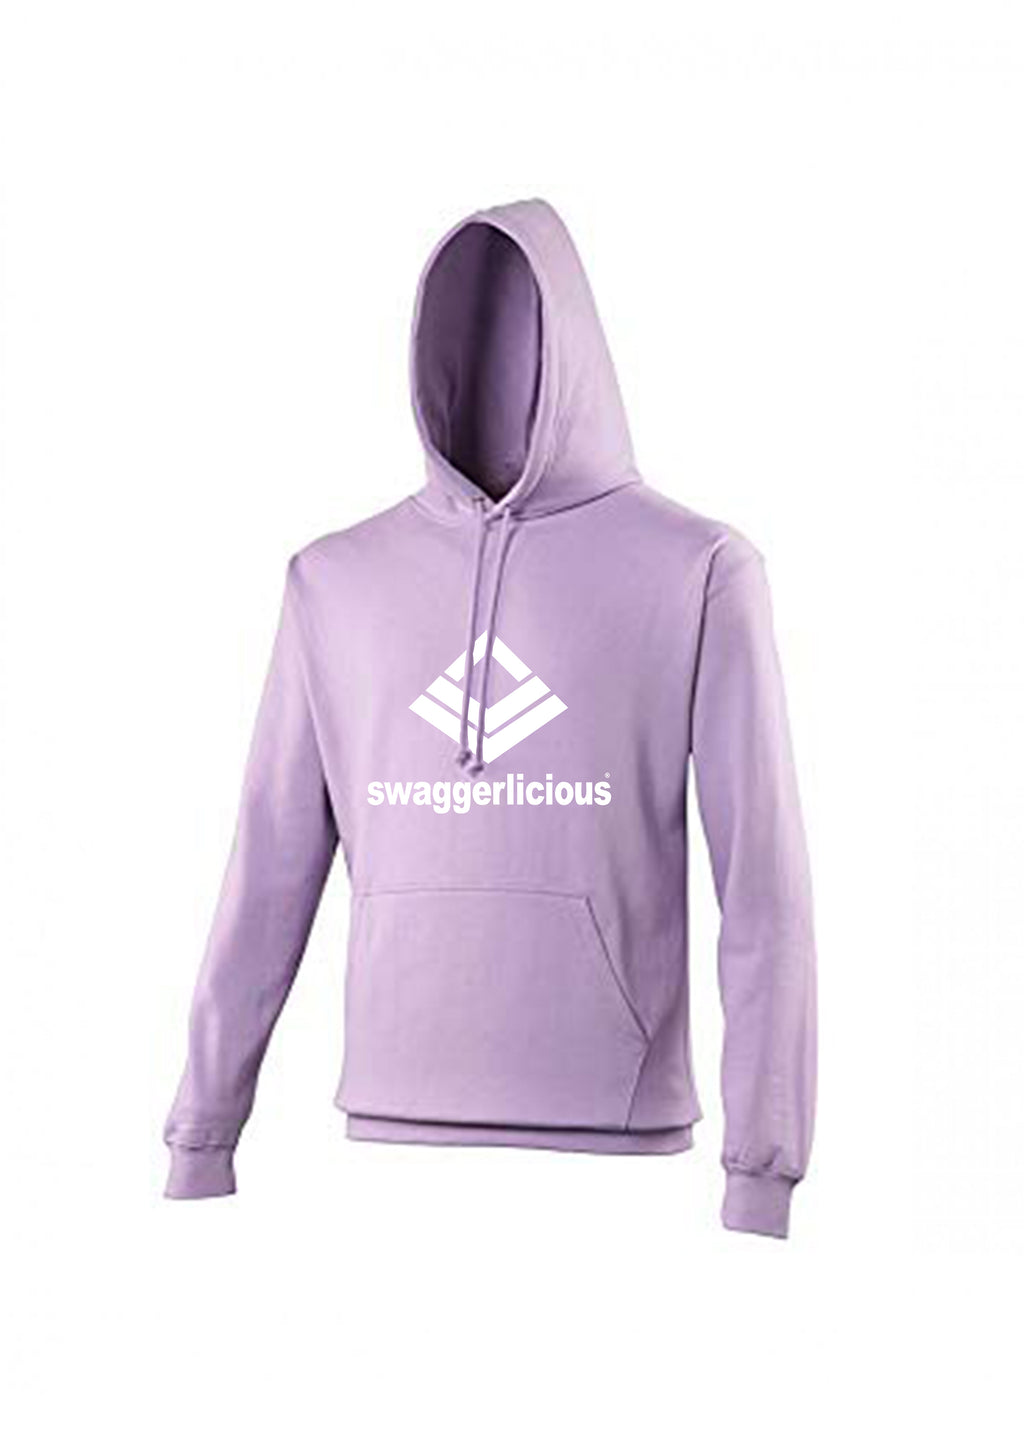 Swaggerlicious Classic Sports Pale Purple Hoodie - swaggerlicious-clothing.com